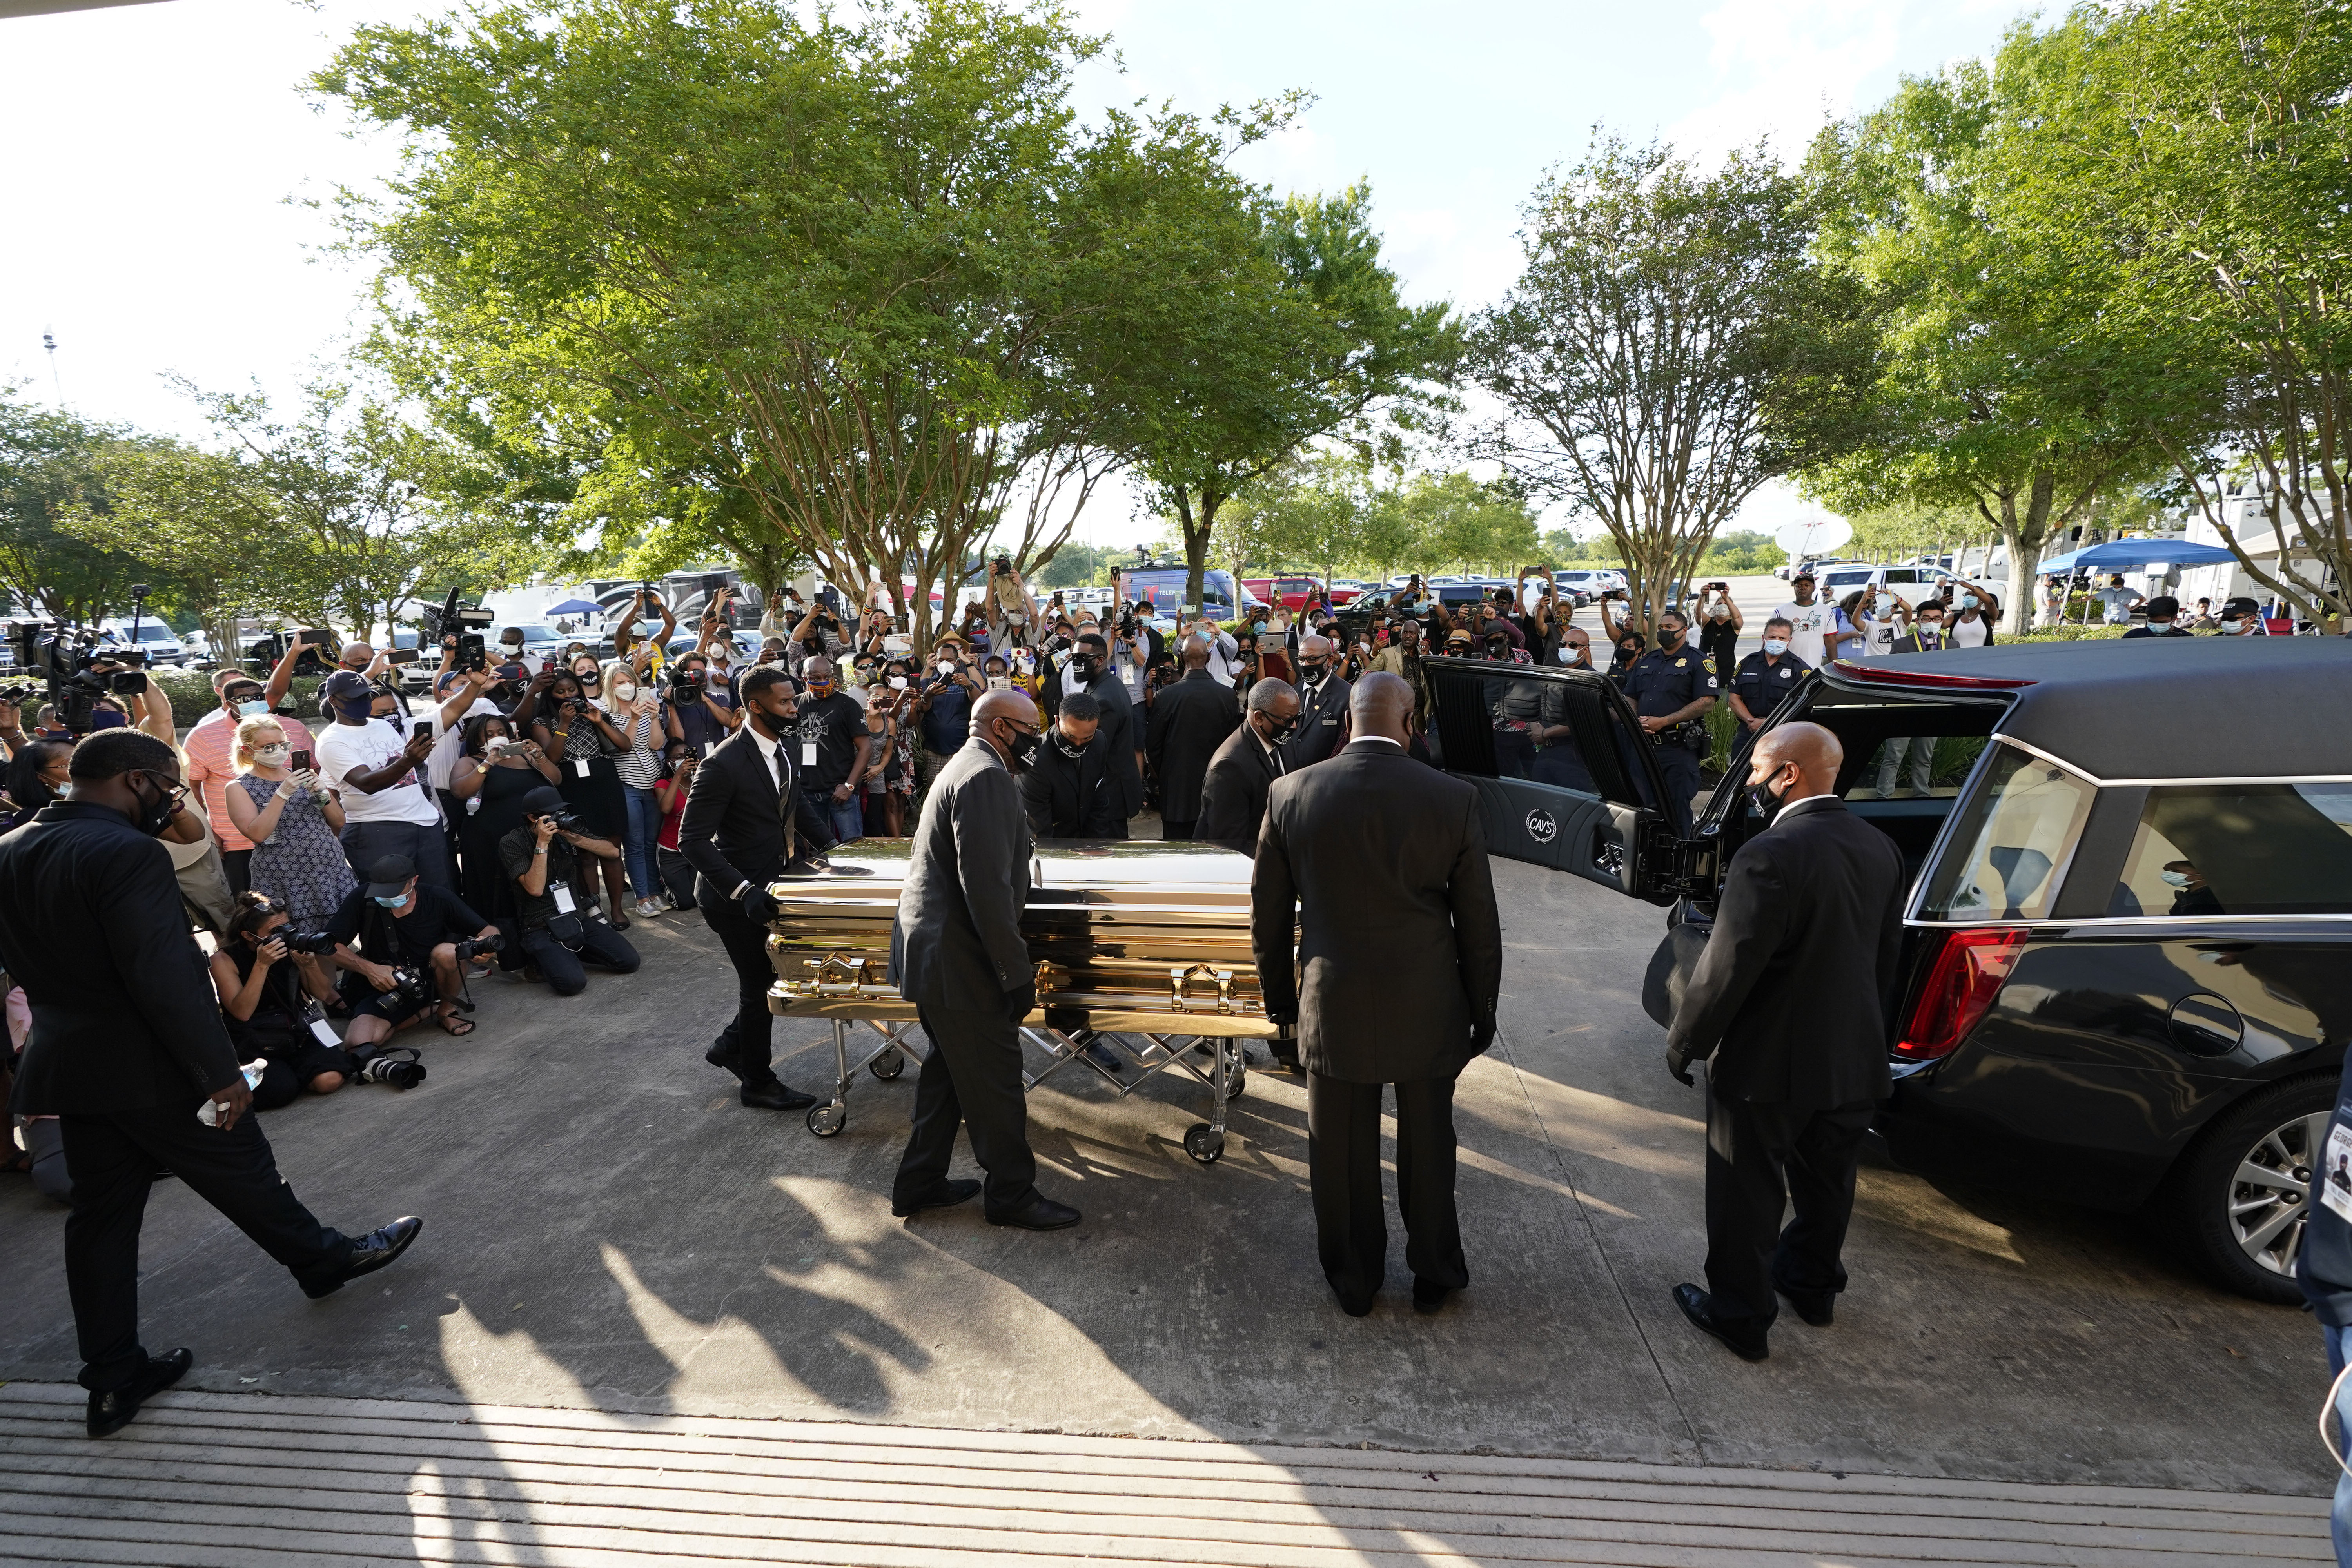 The casket of George Floyd is removed after a public visitation at the Fountain of Praise church in Houston on June 8.